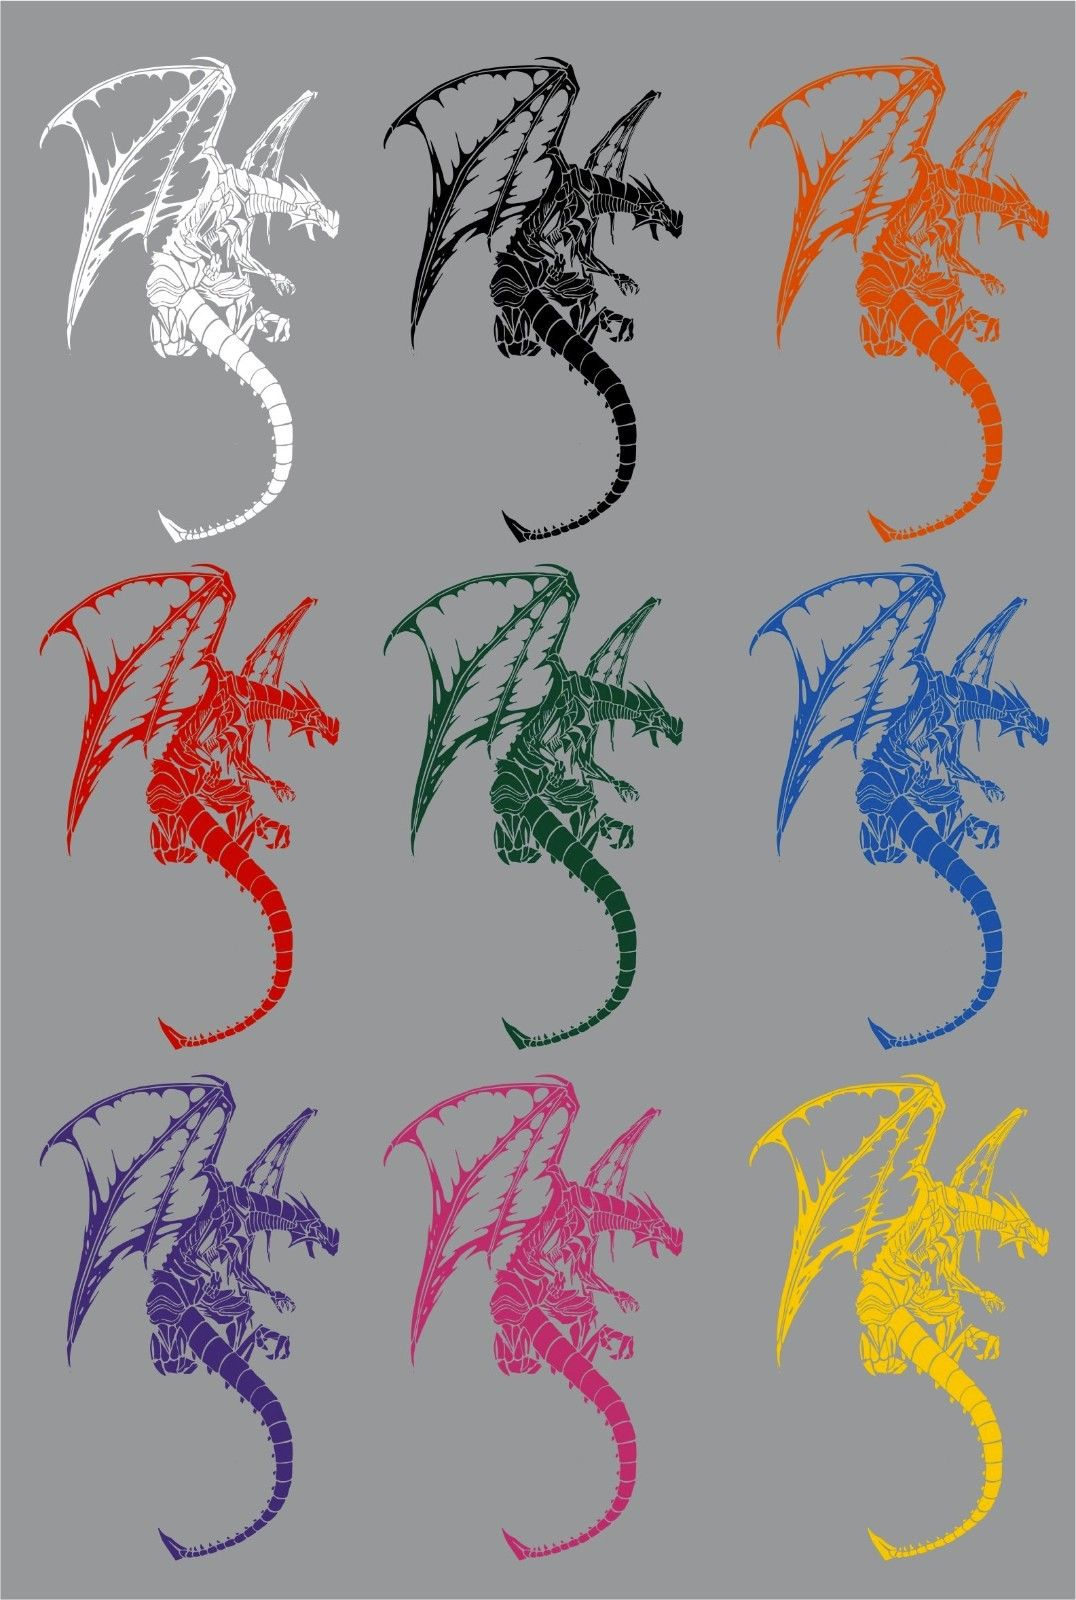 "Dragon Serpent Mythical Creature Car Truck Window Laptop Vinyl Decal Sticker - 15"" long edge"